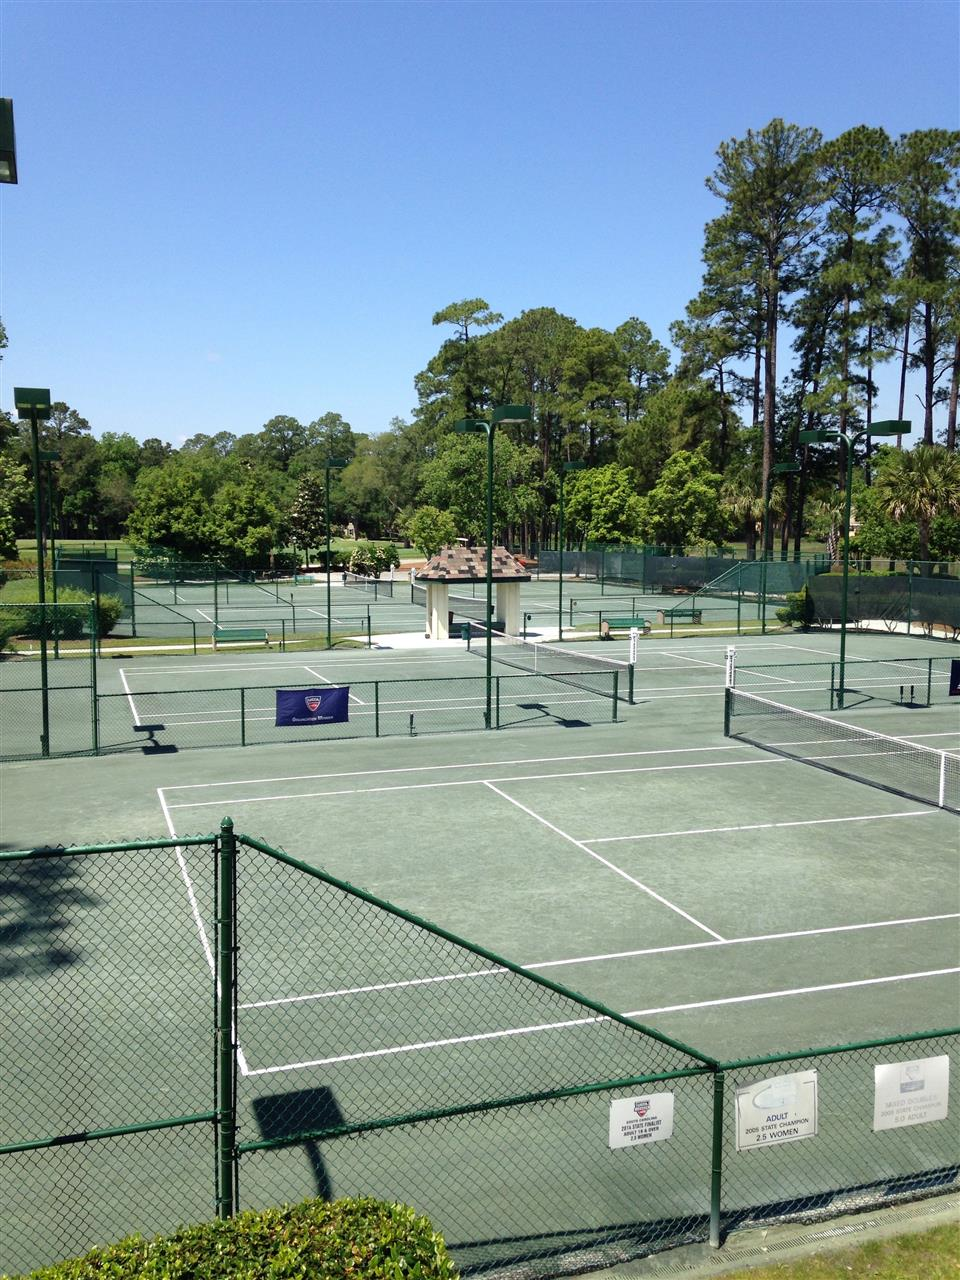 Wexford Plantation Hilton Head Island SC, well maintained tennis courts